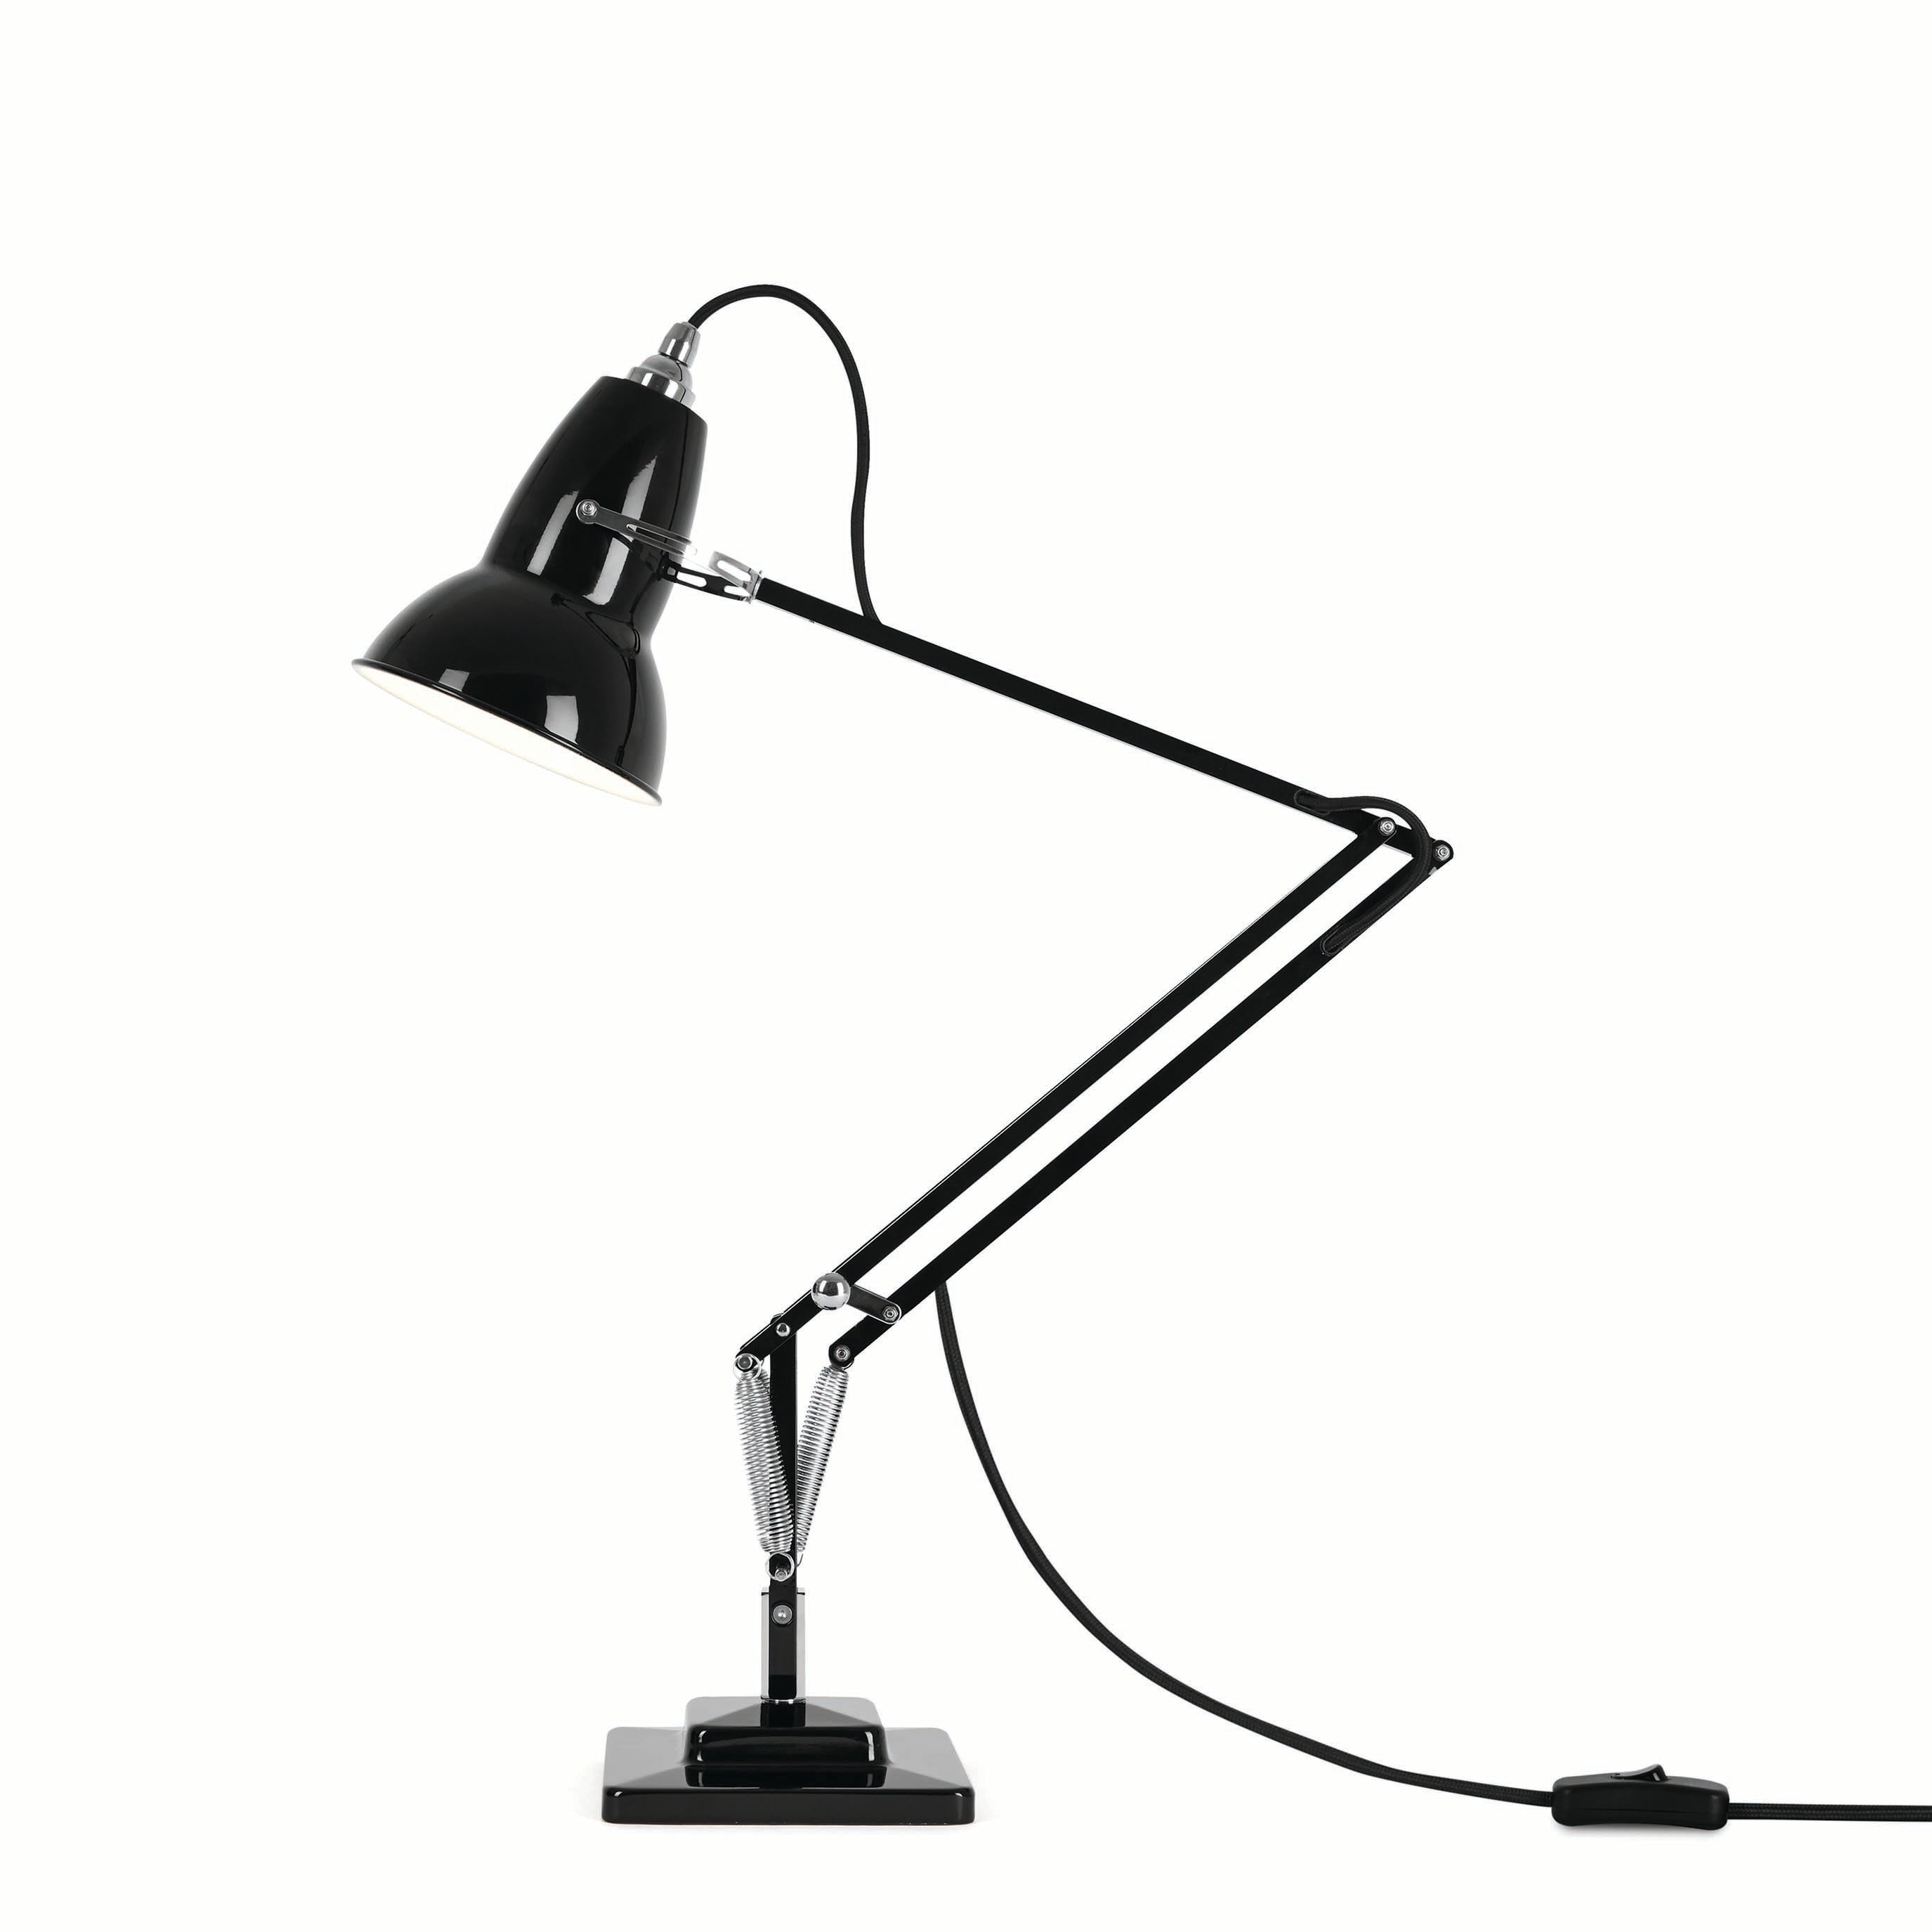 Anglepoise Original 1227 desk lamp in jet black with aluminium shade from Warehouse Home